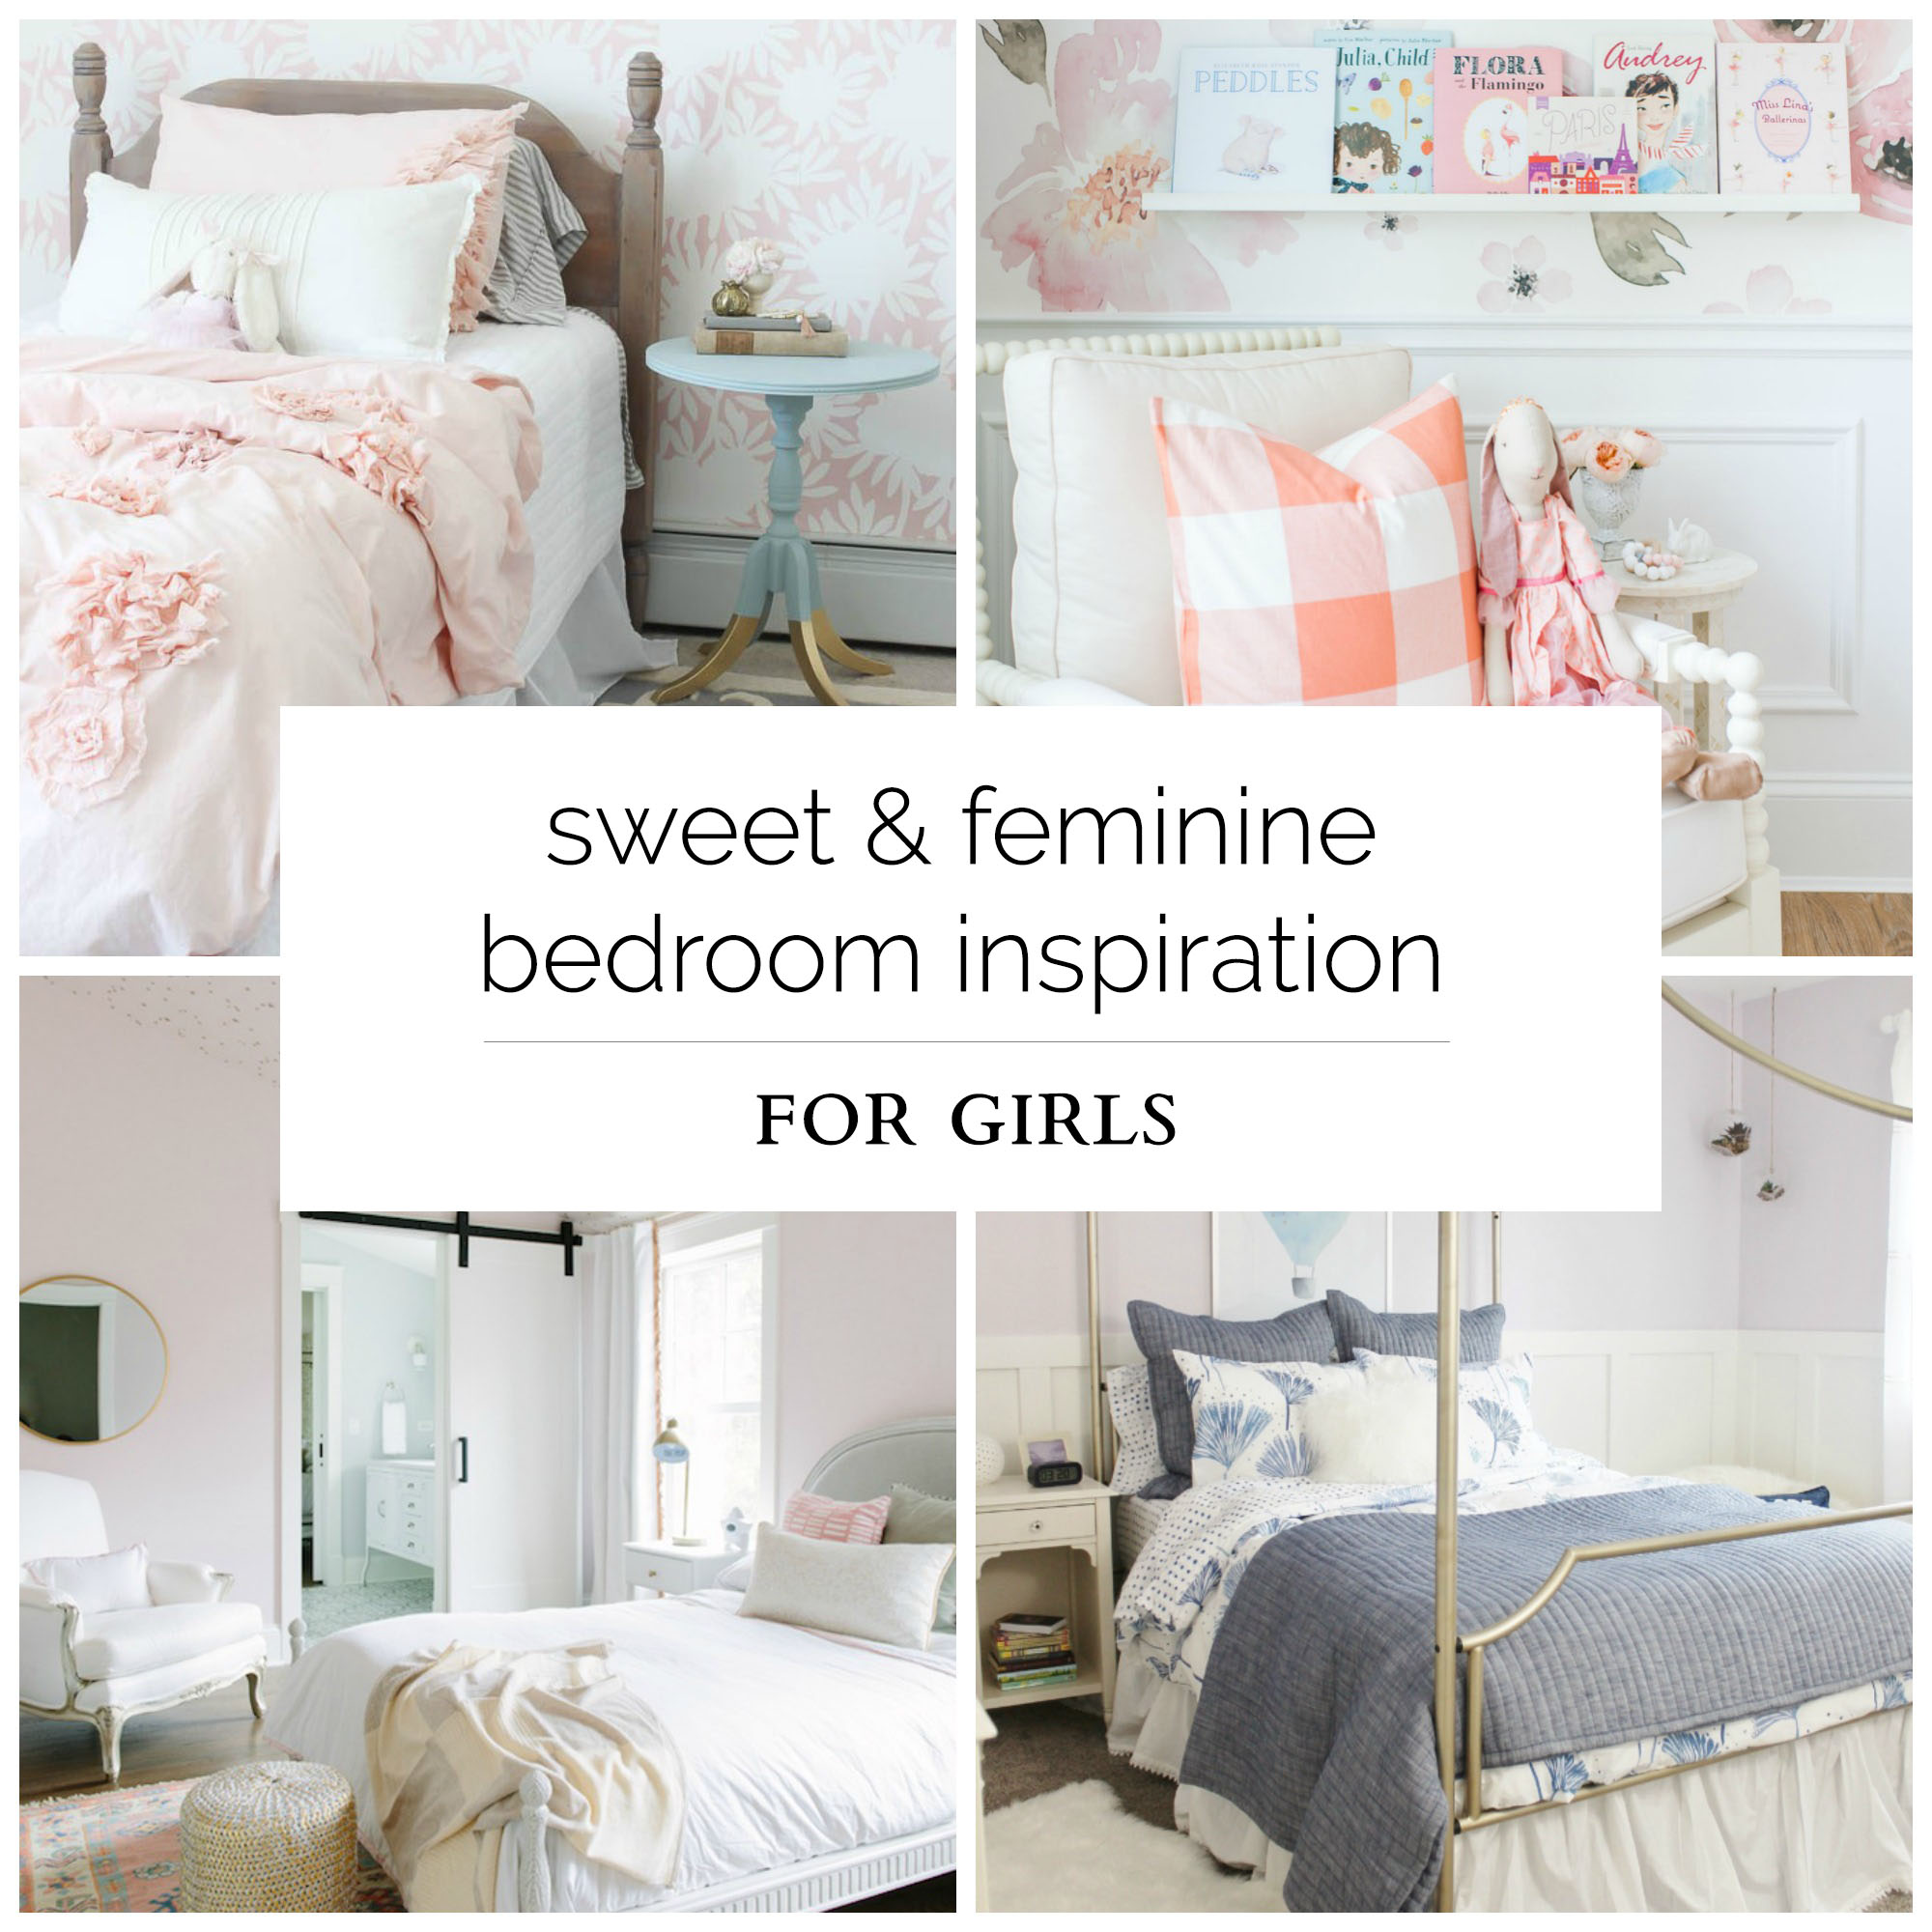 home white color with girl wall bedrooms plus how together and wooden decorate to bed a pf toddler decor floor plans room amazing green house interior ideas girls bedroom design sheet